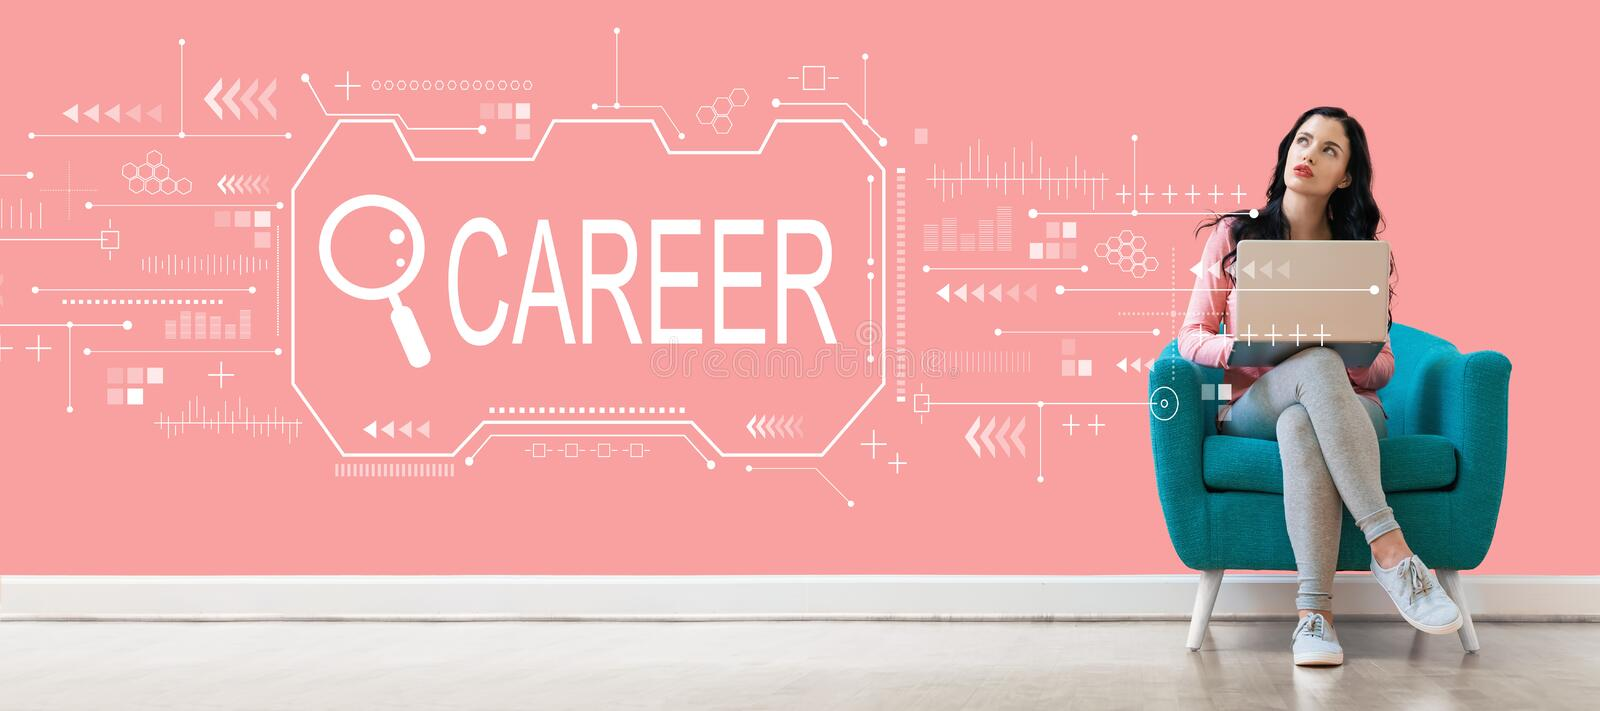 Searching career theme with woman using a laptop royalty free stock image